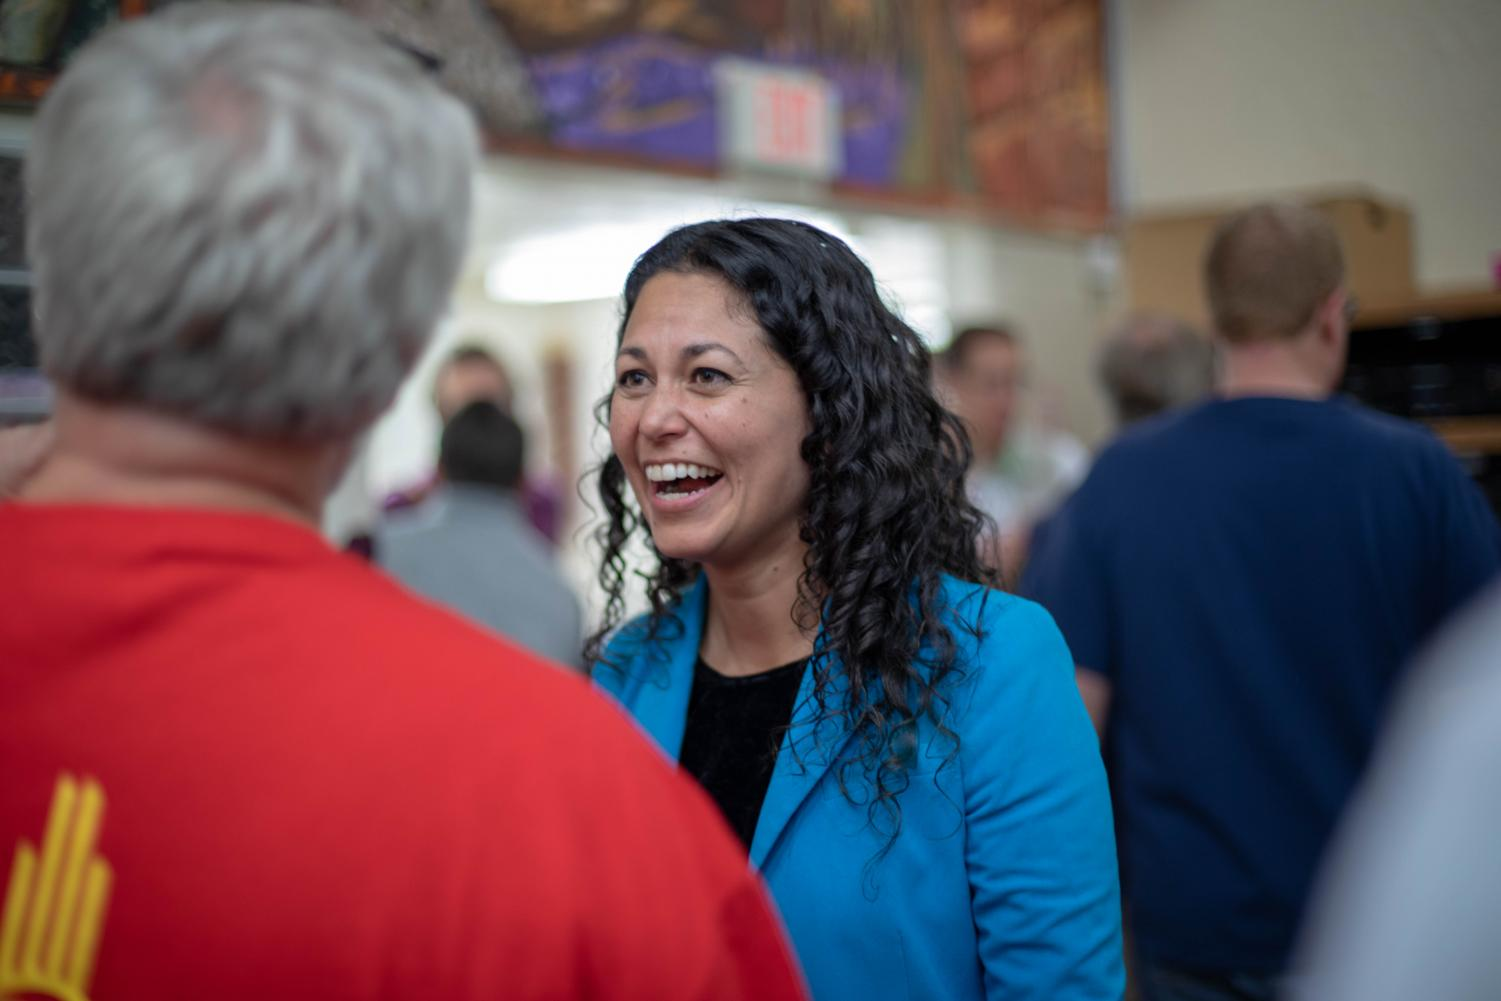 Xochitl Torres Small will represent the 2nd Congressional District in the House of Representatives